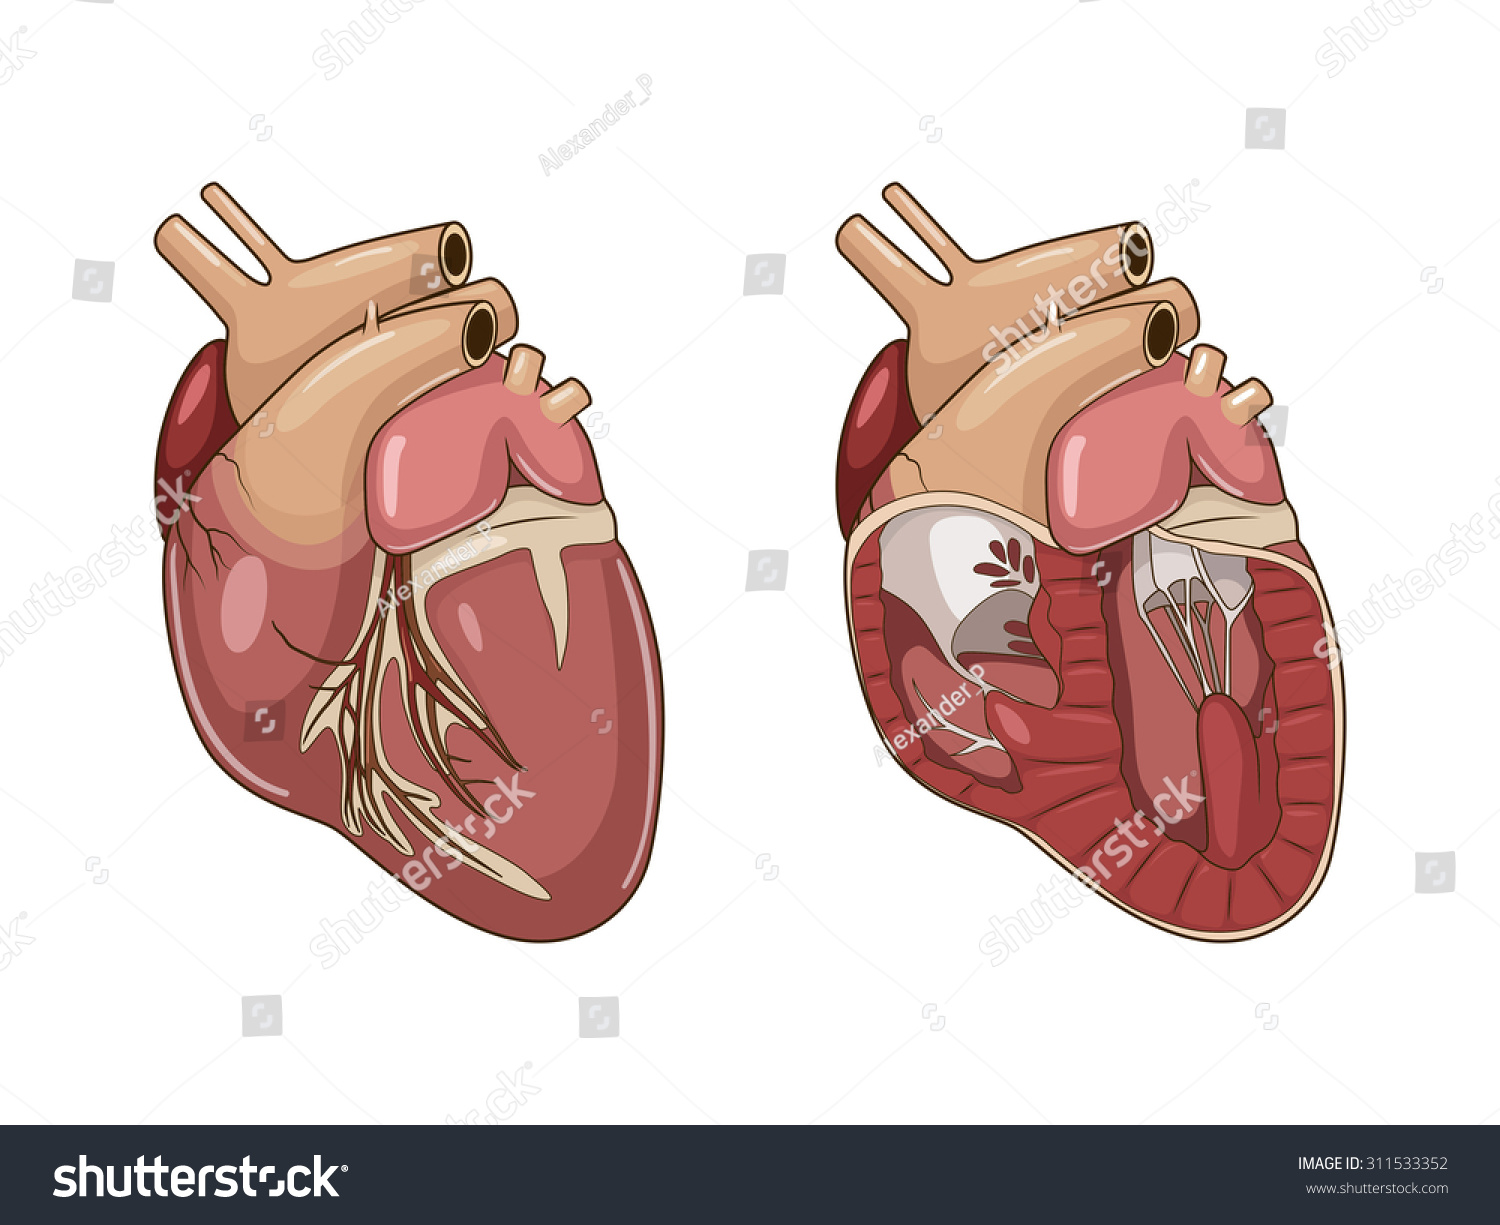 Heart Dog Vector Illustration Stock Photo (Photo, Vector ...